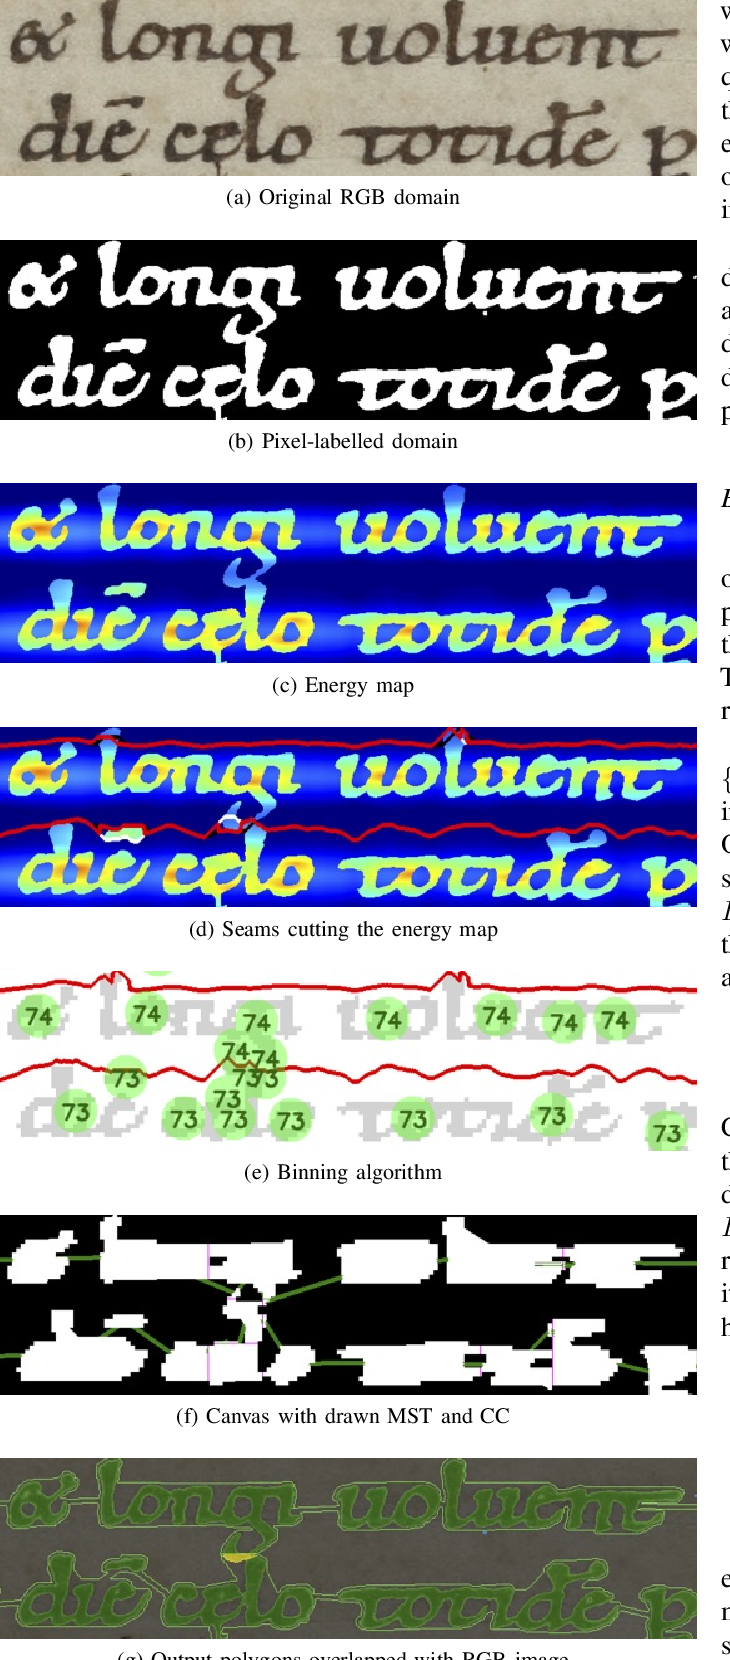 Figure 4 for Labeling, Cutting, Grouping: an Efficient Text Line Segmentation Method for Medieval Manuscripts